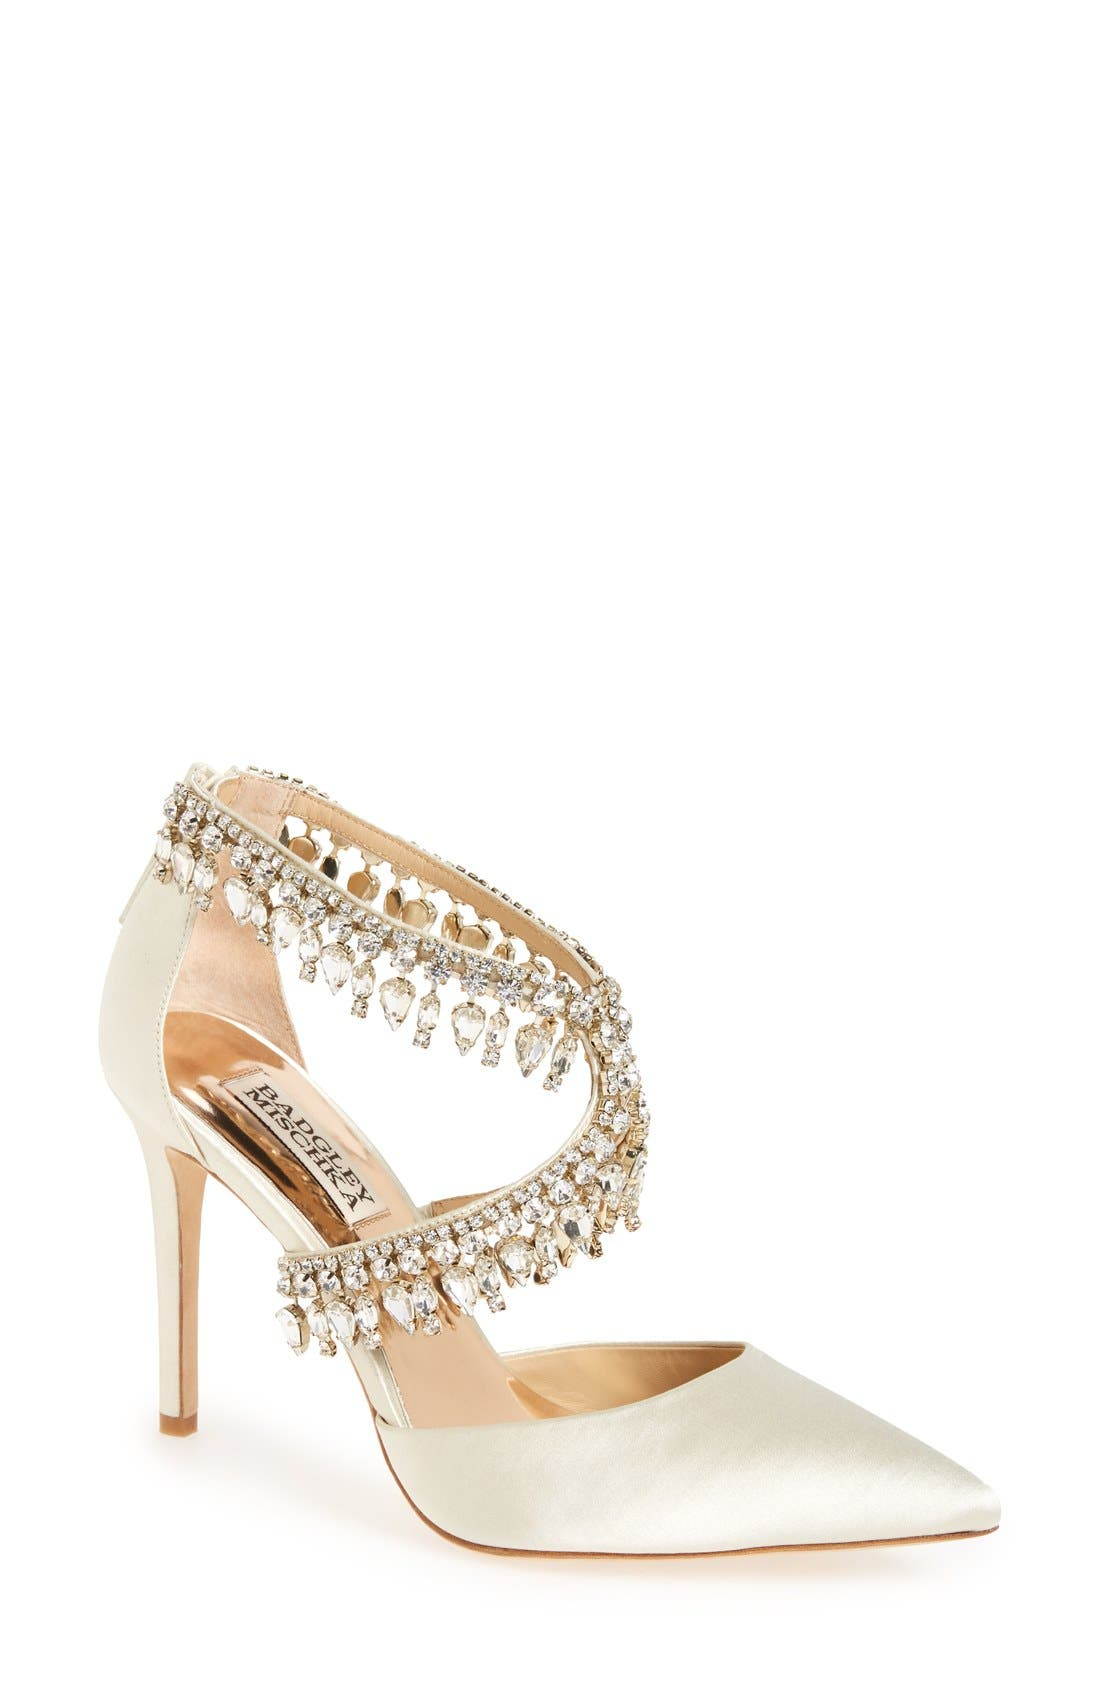 Alternate Image 1 Selected - Badgley Mischka 'Glamorous' Crystal-Embellished Pointy Toe Pump (Women)